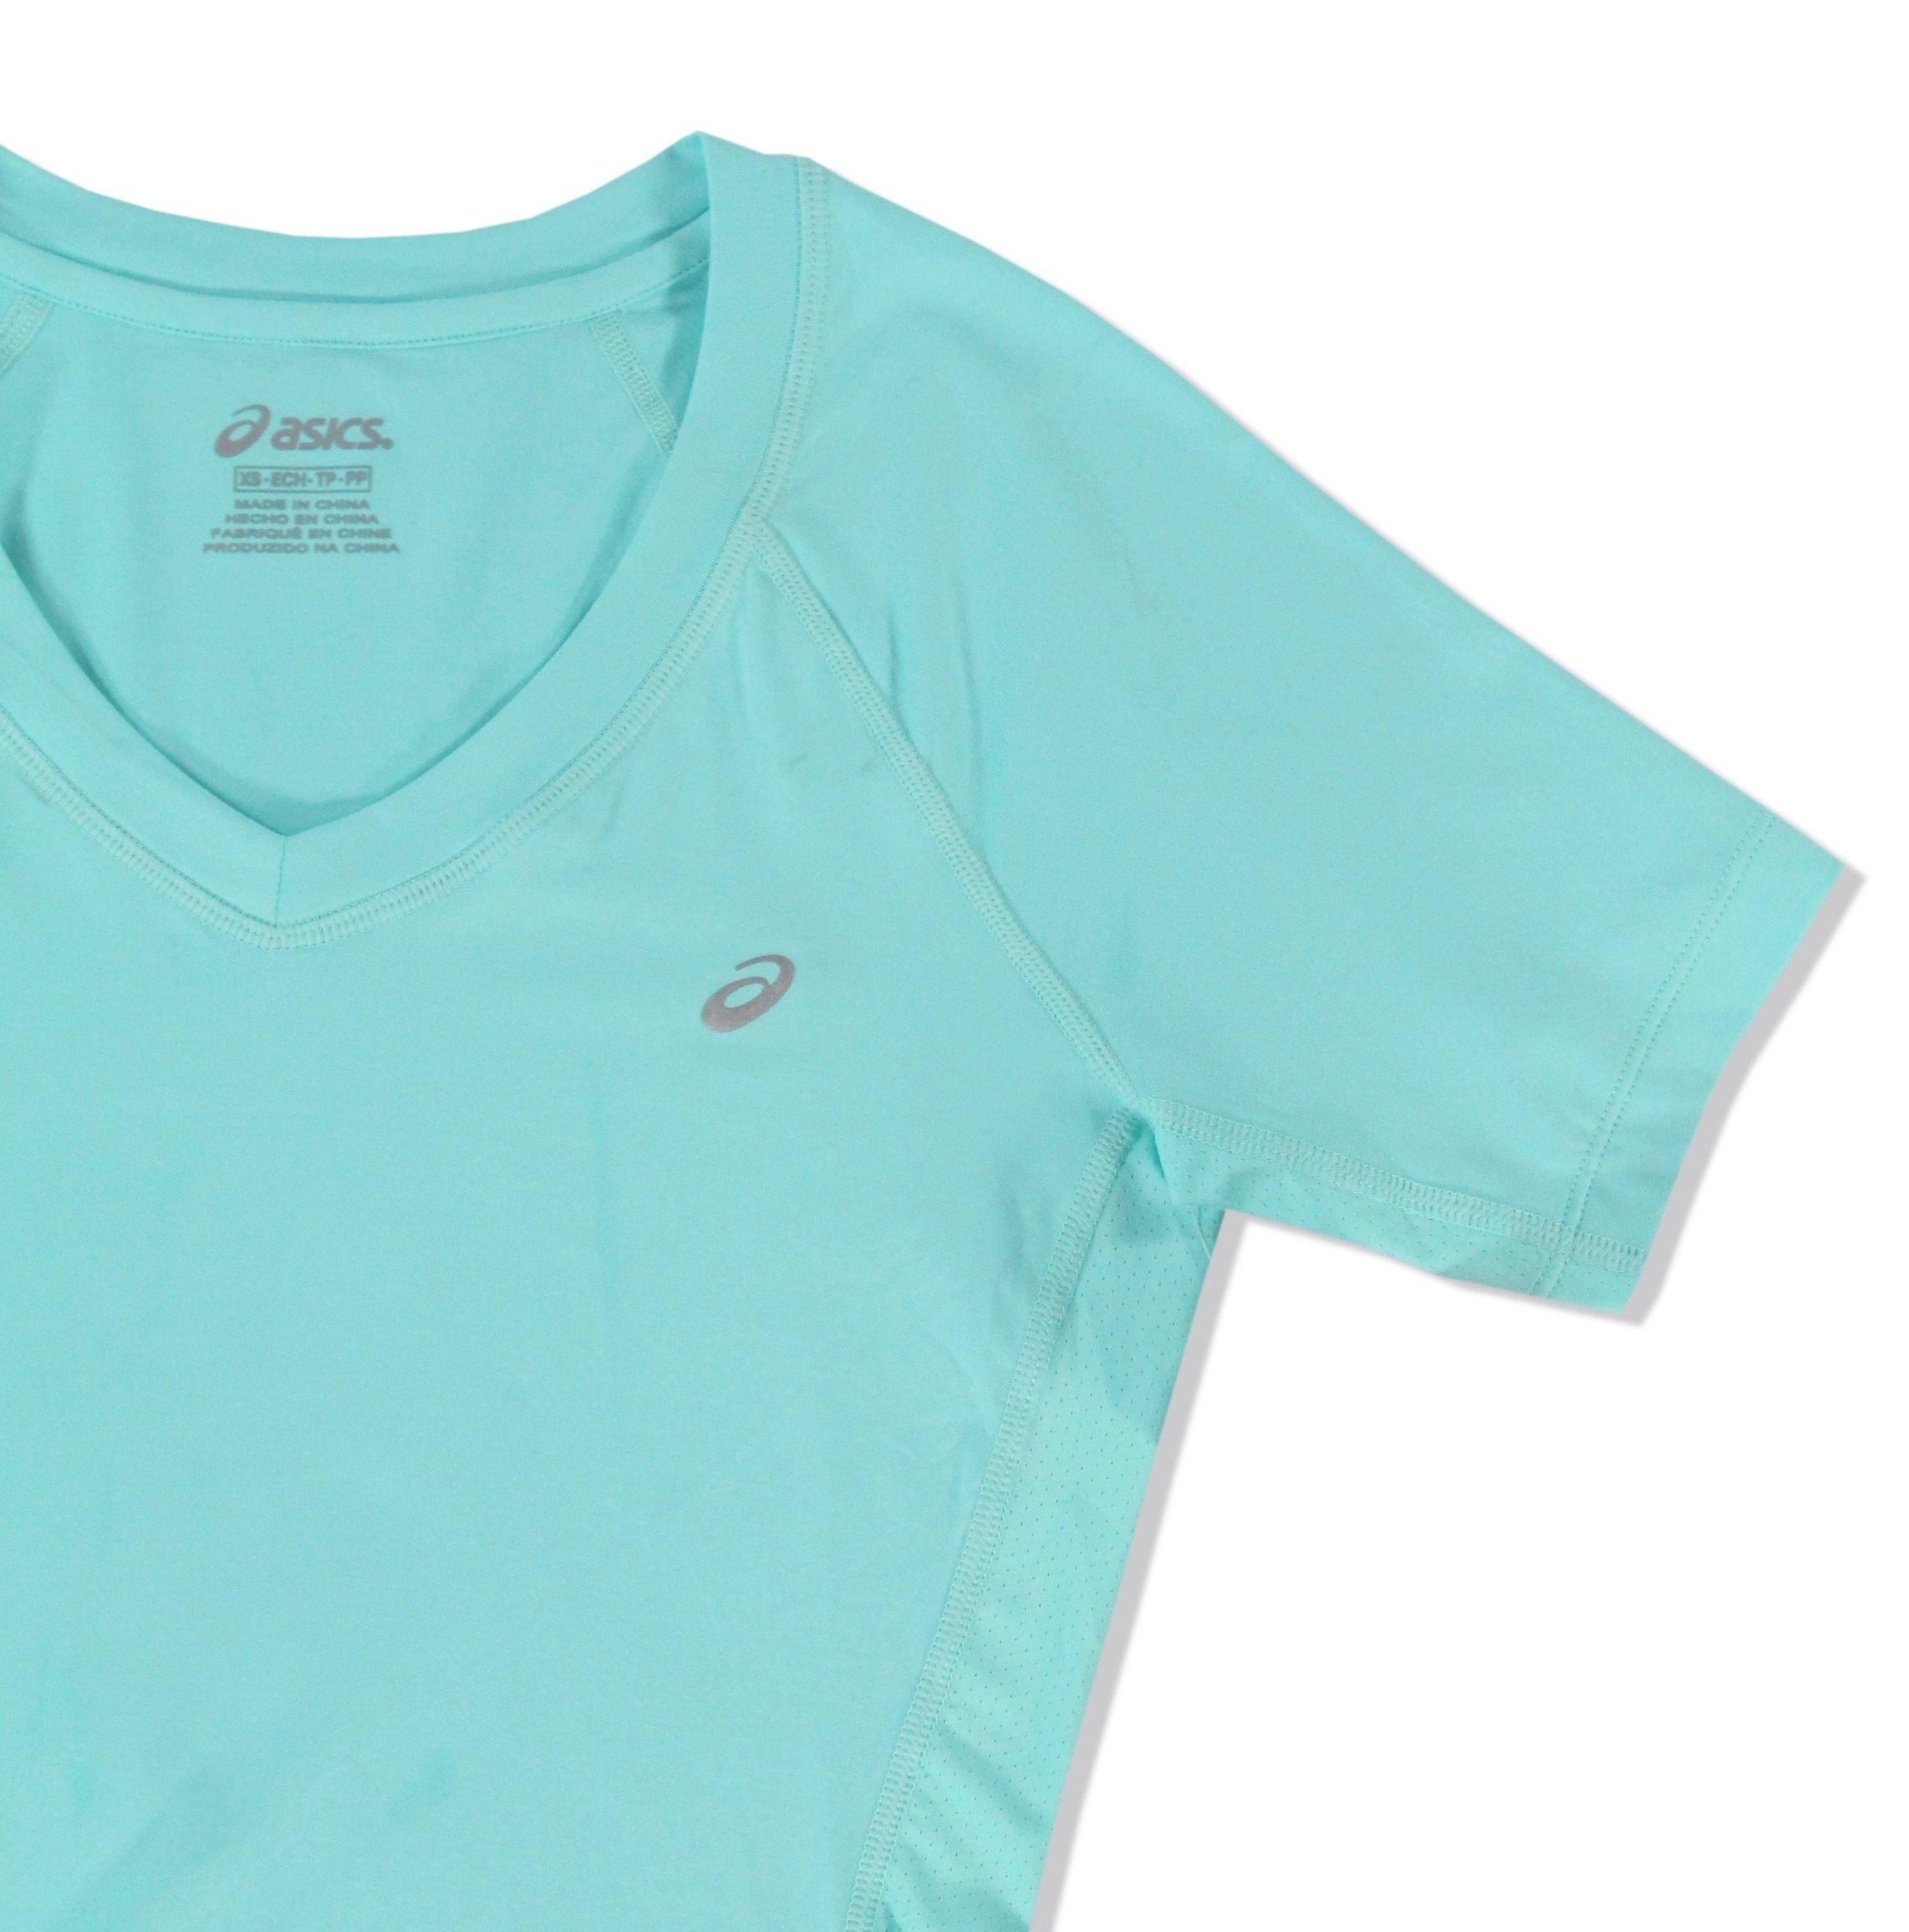 Asics-NEW-Solid-Hue-Women-039-s-V-Neck-Performance-ASX-Dry-T-Shirt-Top-38 thumbnail 19